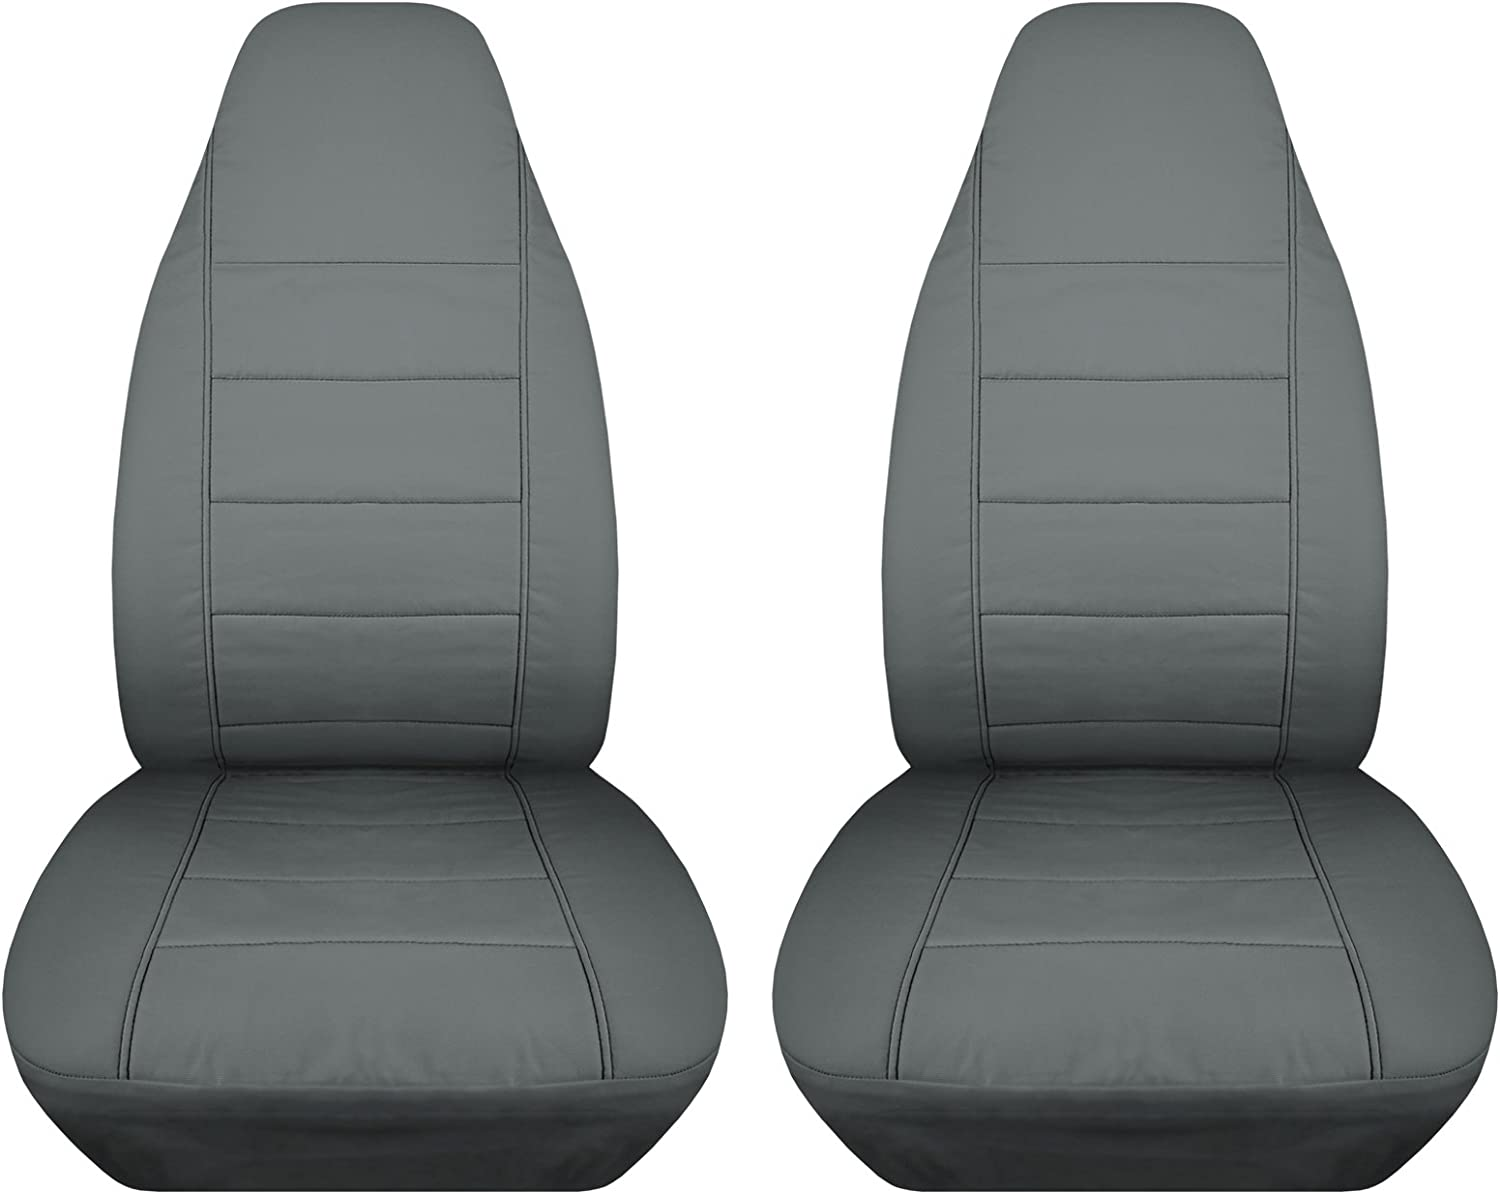 Front 23 Colors Will Make Fit Any Car//Truck//Van//RV//SUV Totally Covers Solid Car Seat Covers: Black Semi-Custom Fit